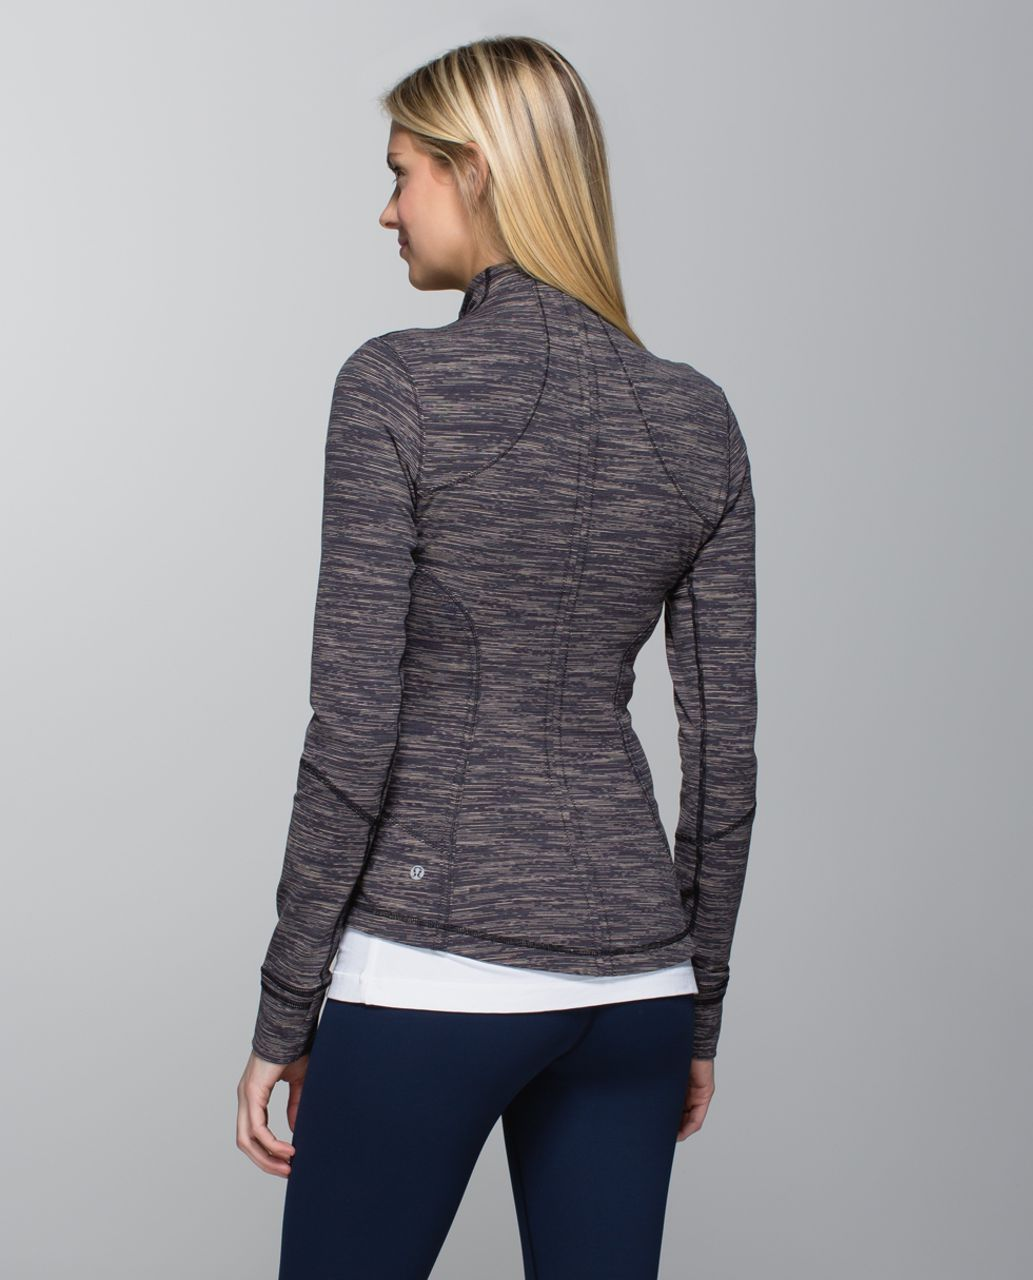 Lululemon Forme Jacket *Cuffins - Wee Are From Space Black Cashew